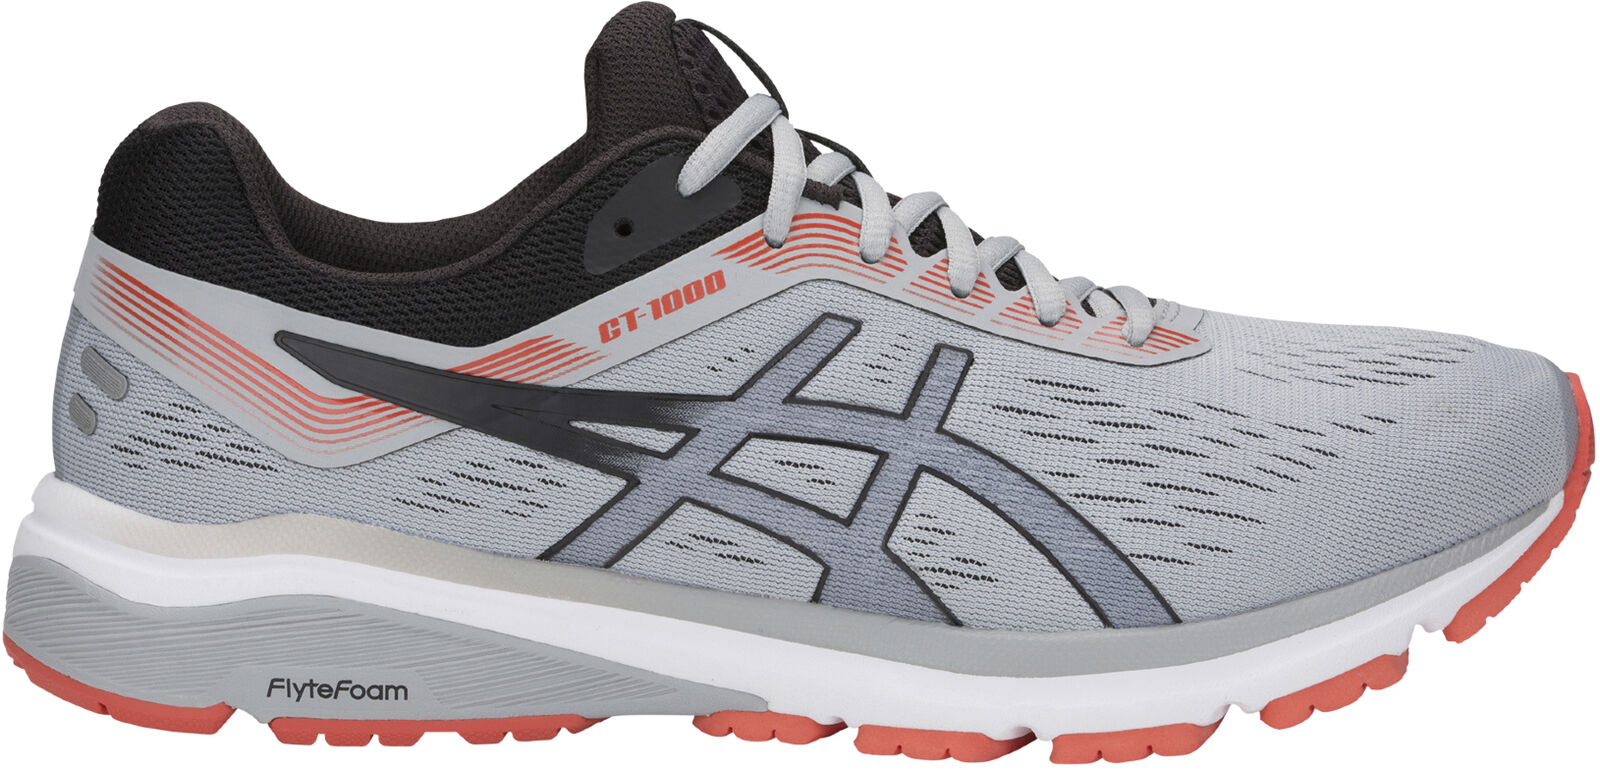 Asics GT 1000 7 Mens Running shoes  - Grey  the cheapest